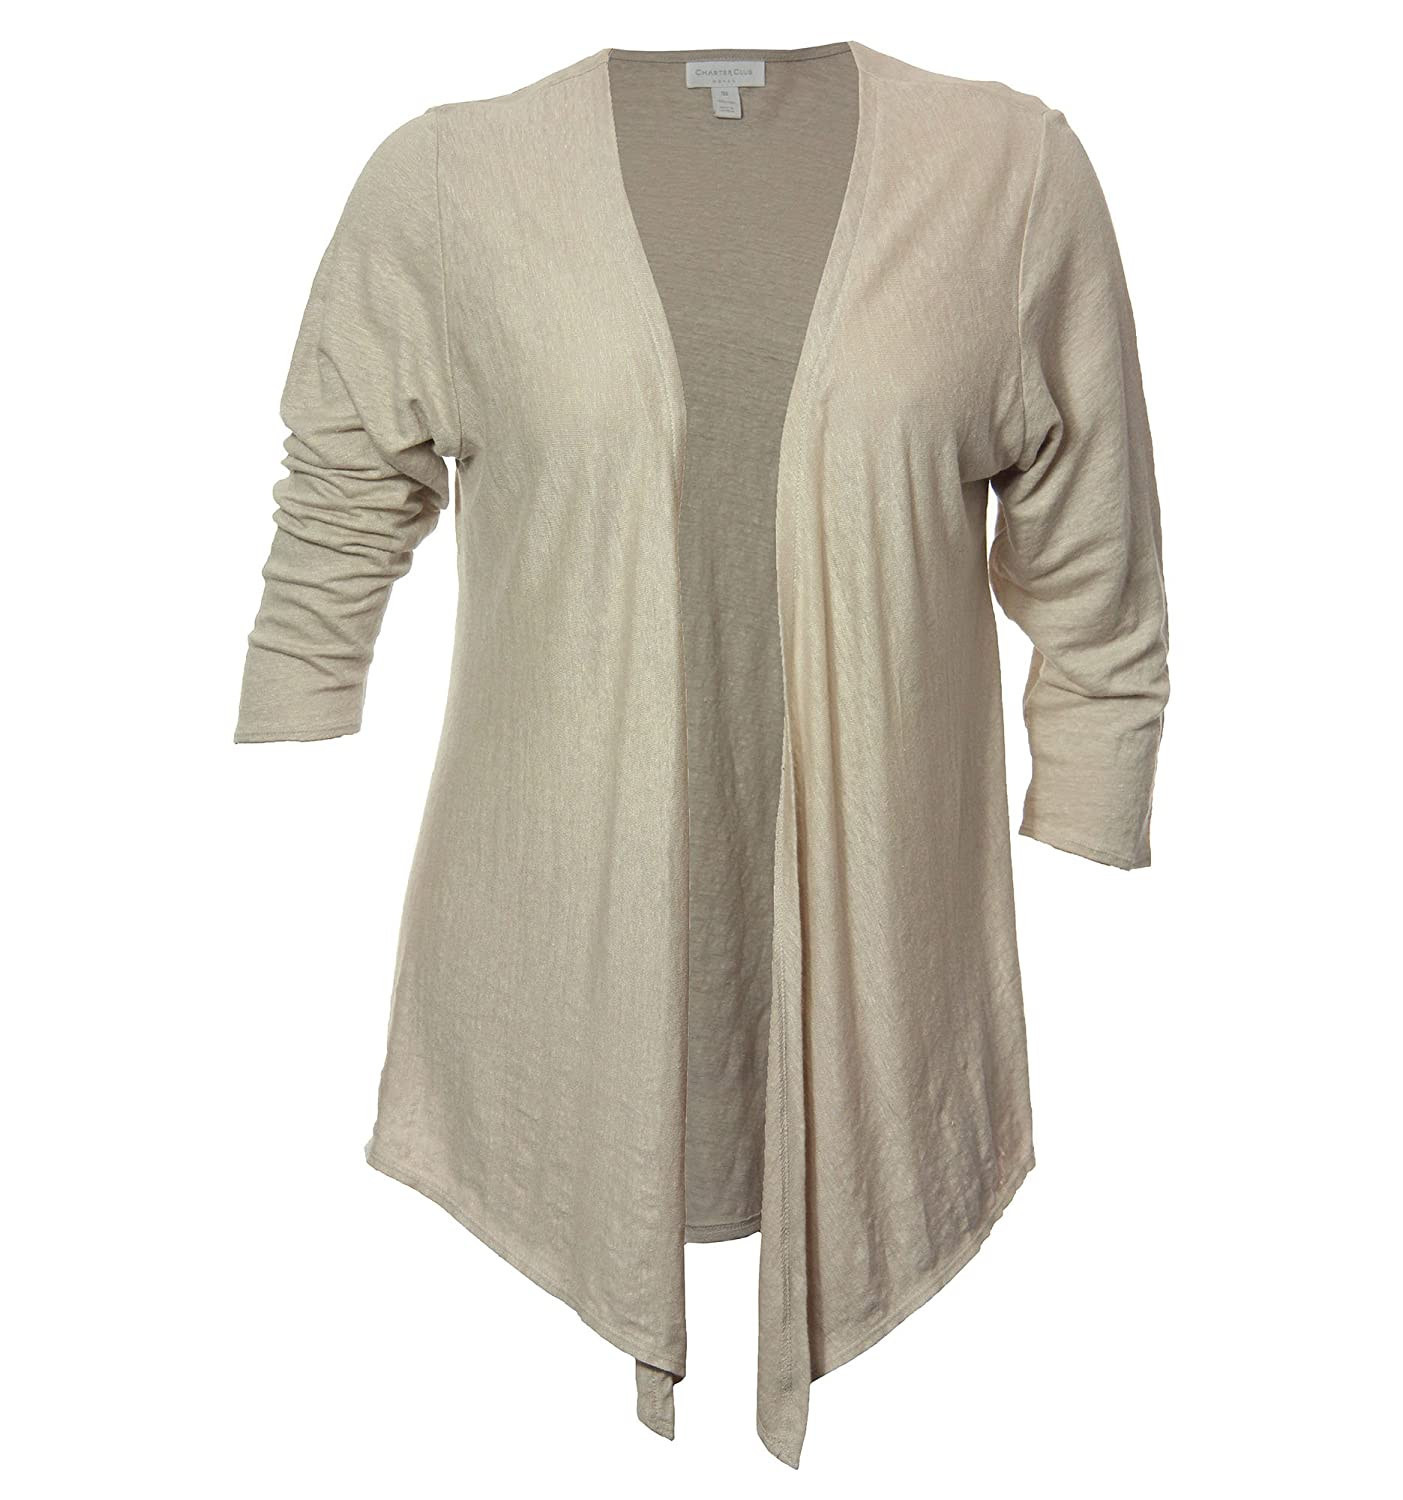 Charter Club Women's Plus Long Sleeve Open Front Linen Cardigan Shrug Sand (3x)